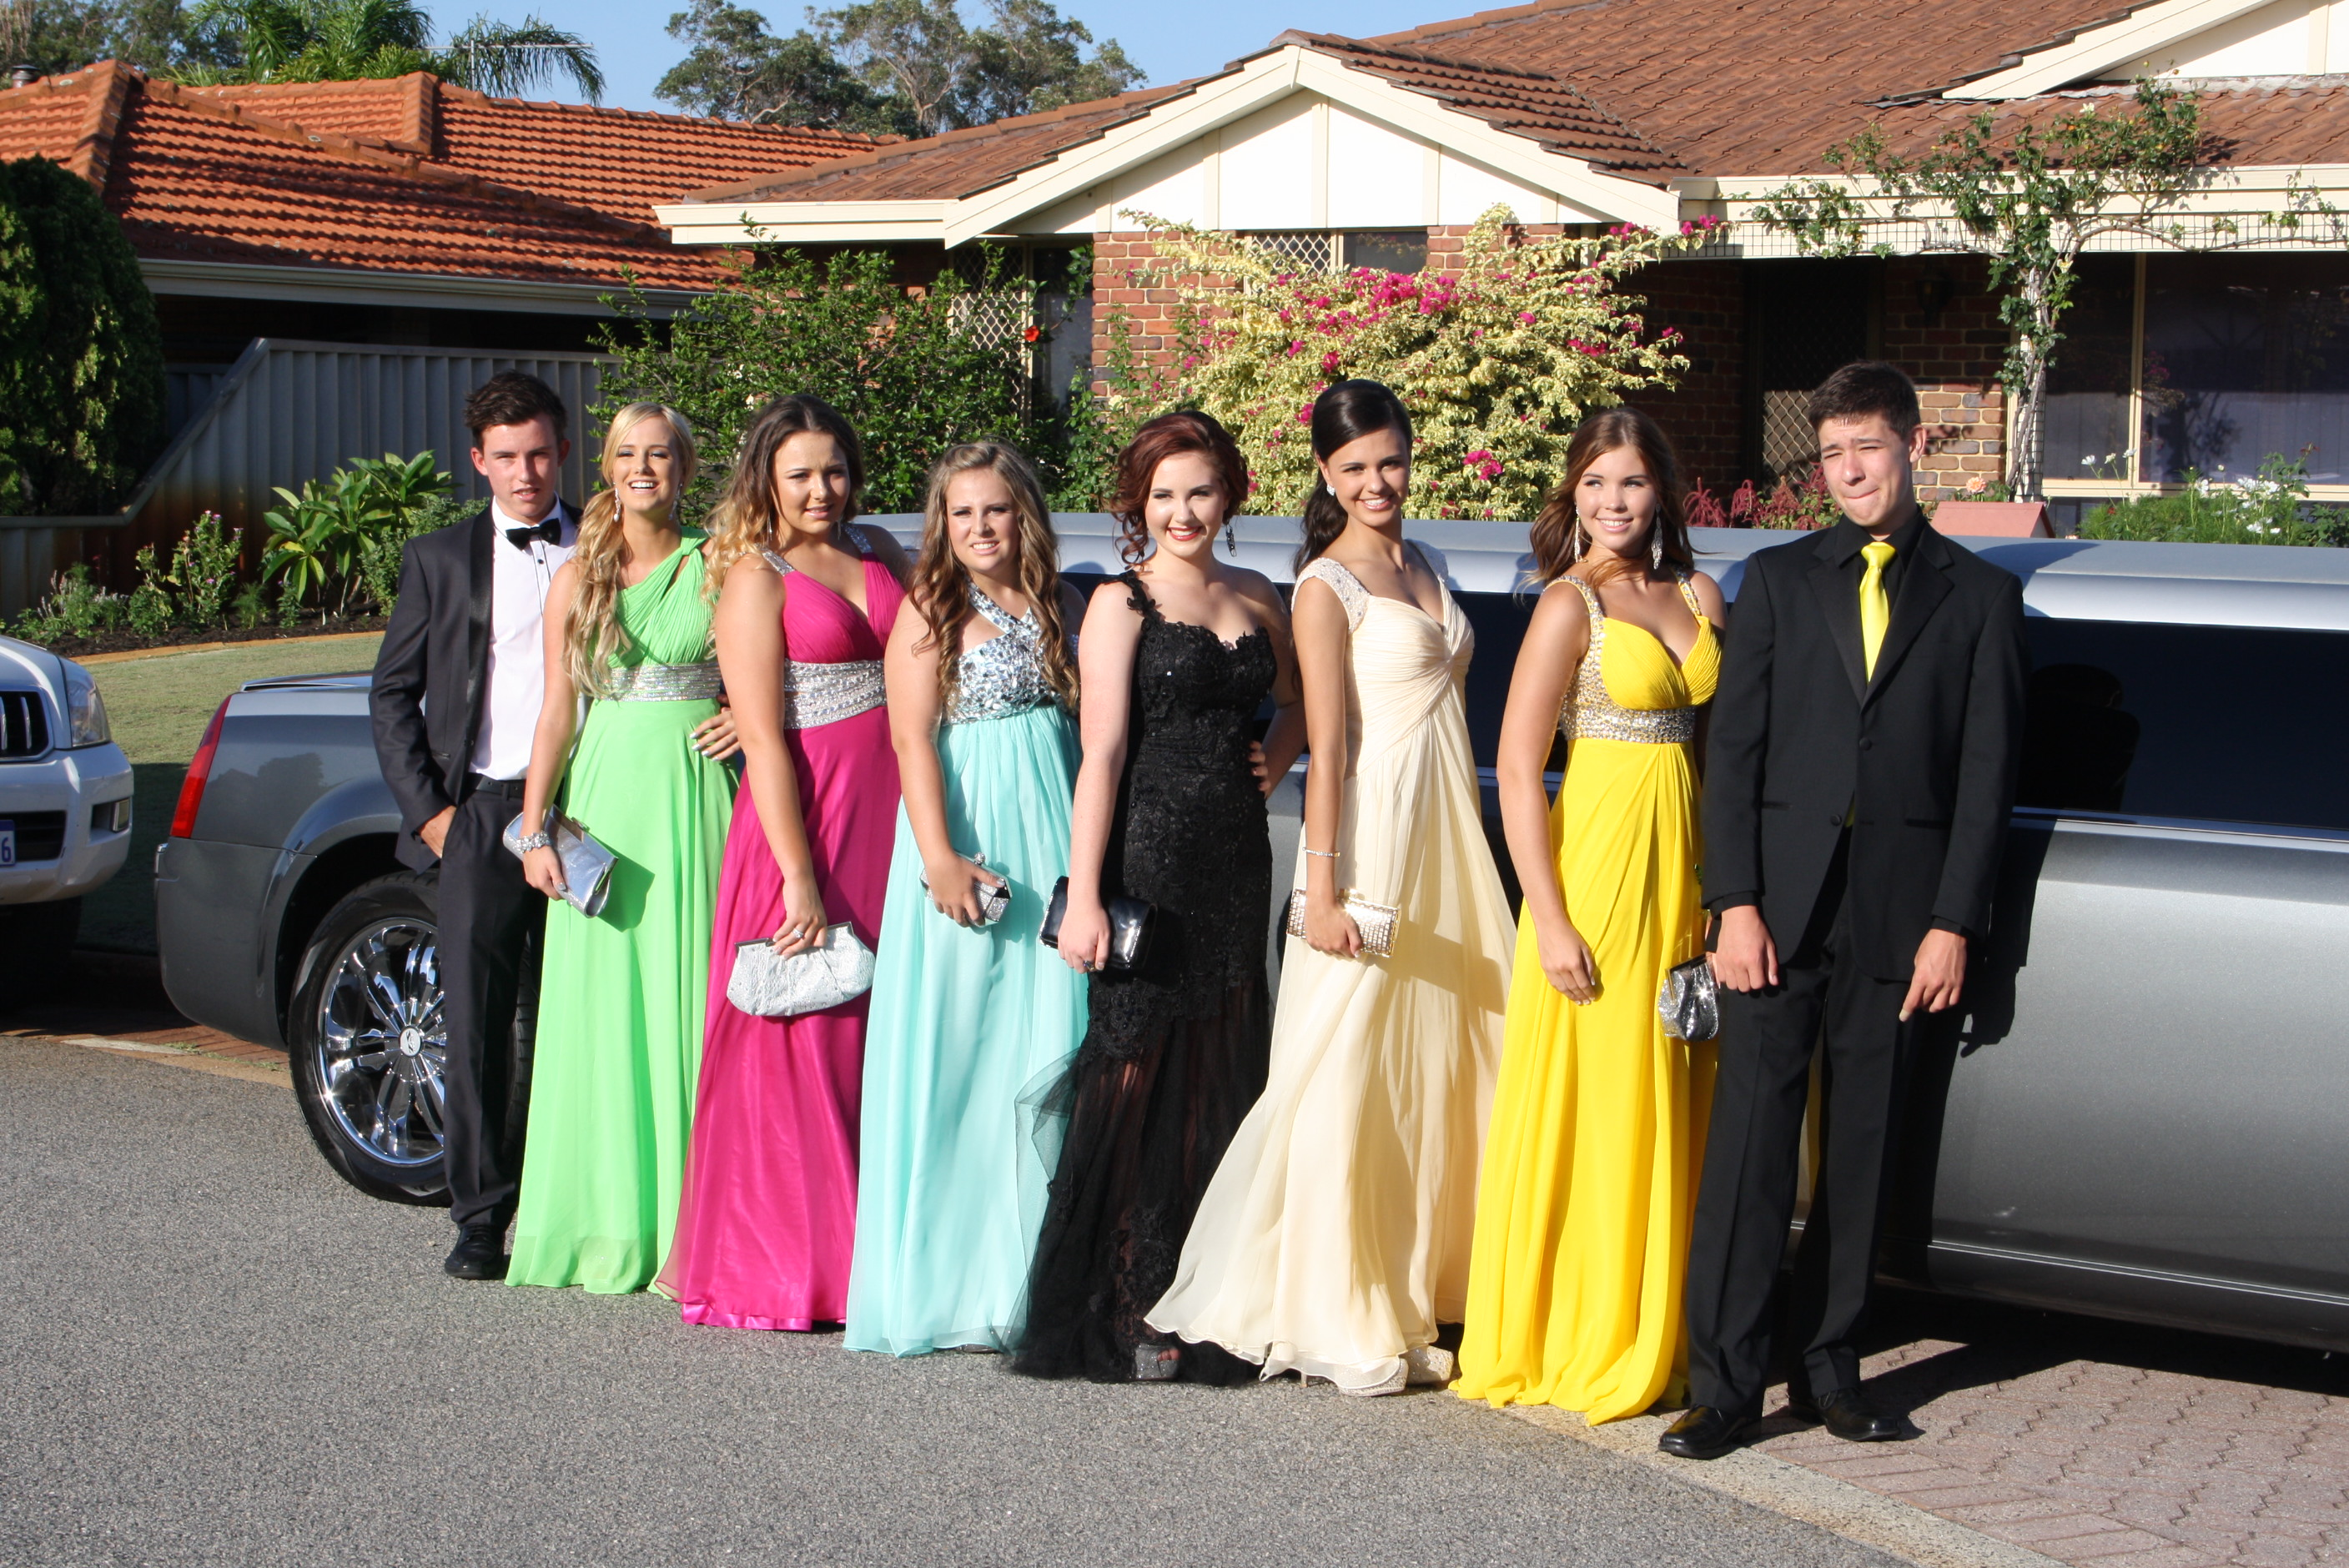 School Formal at Hillaries